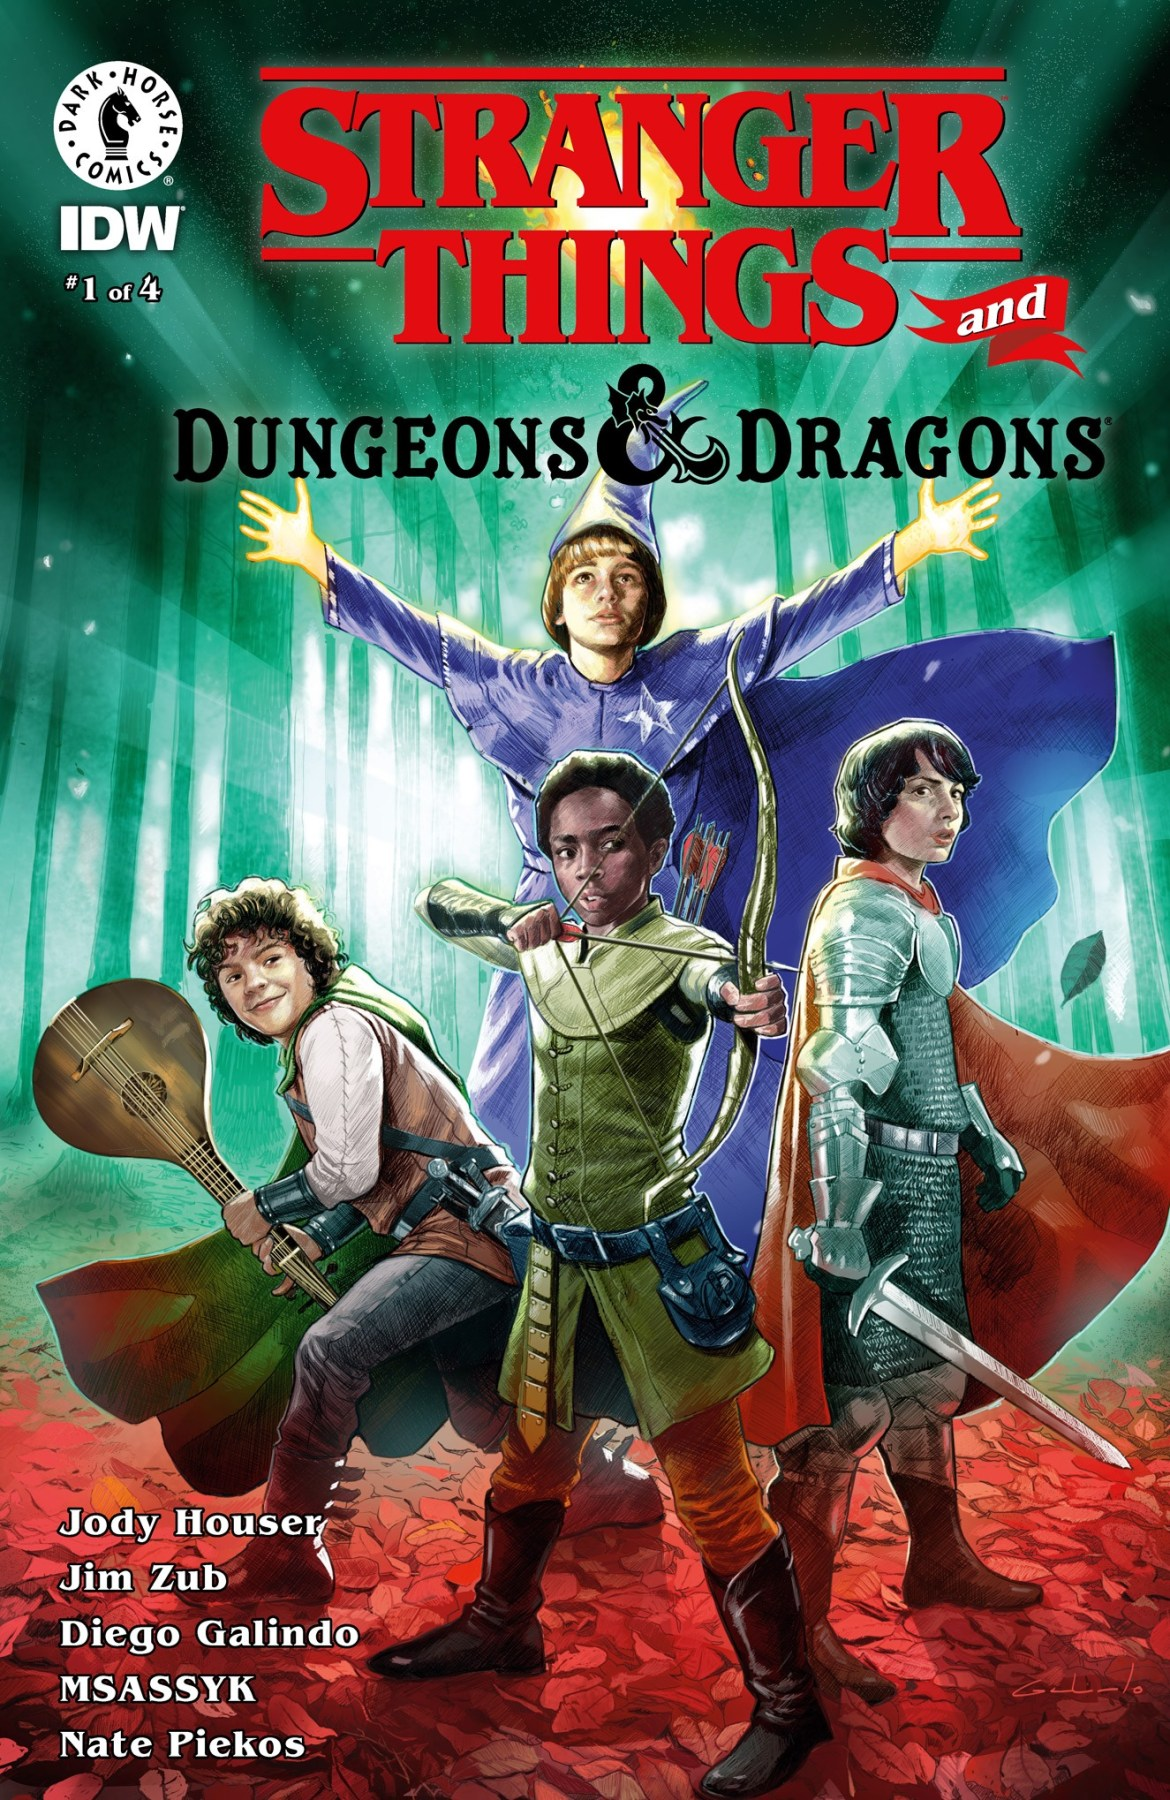 ST_DnD_cov Dark Horse and IDW combine STRANGER THINGS and DUNGEONS & DRAGONS